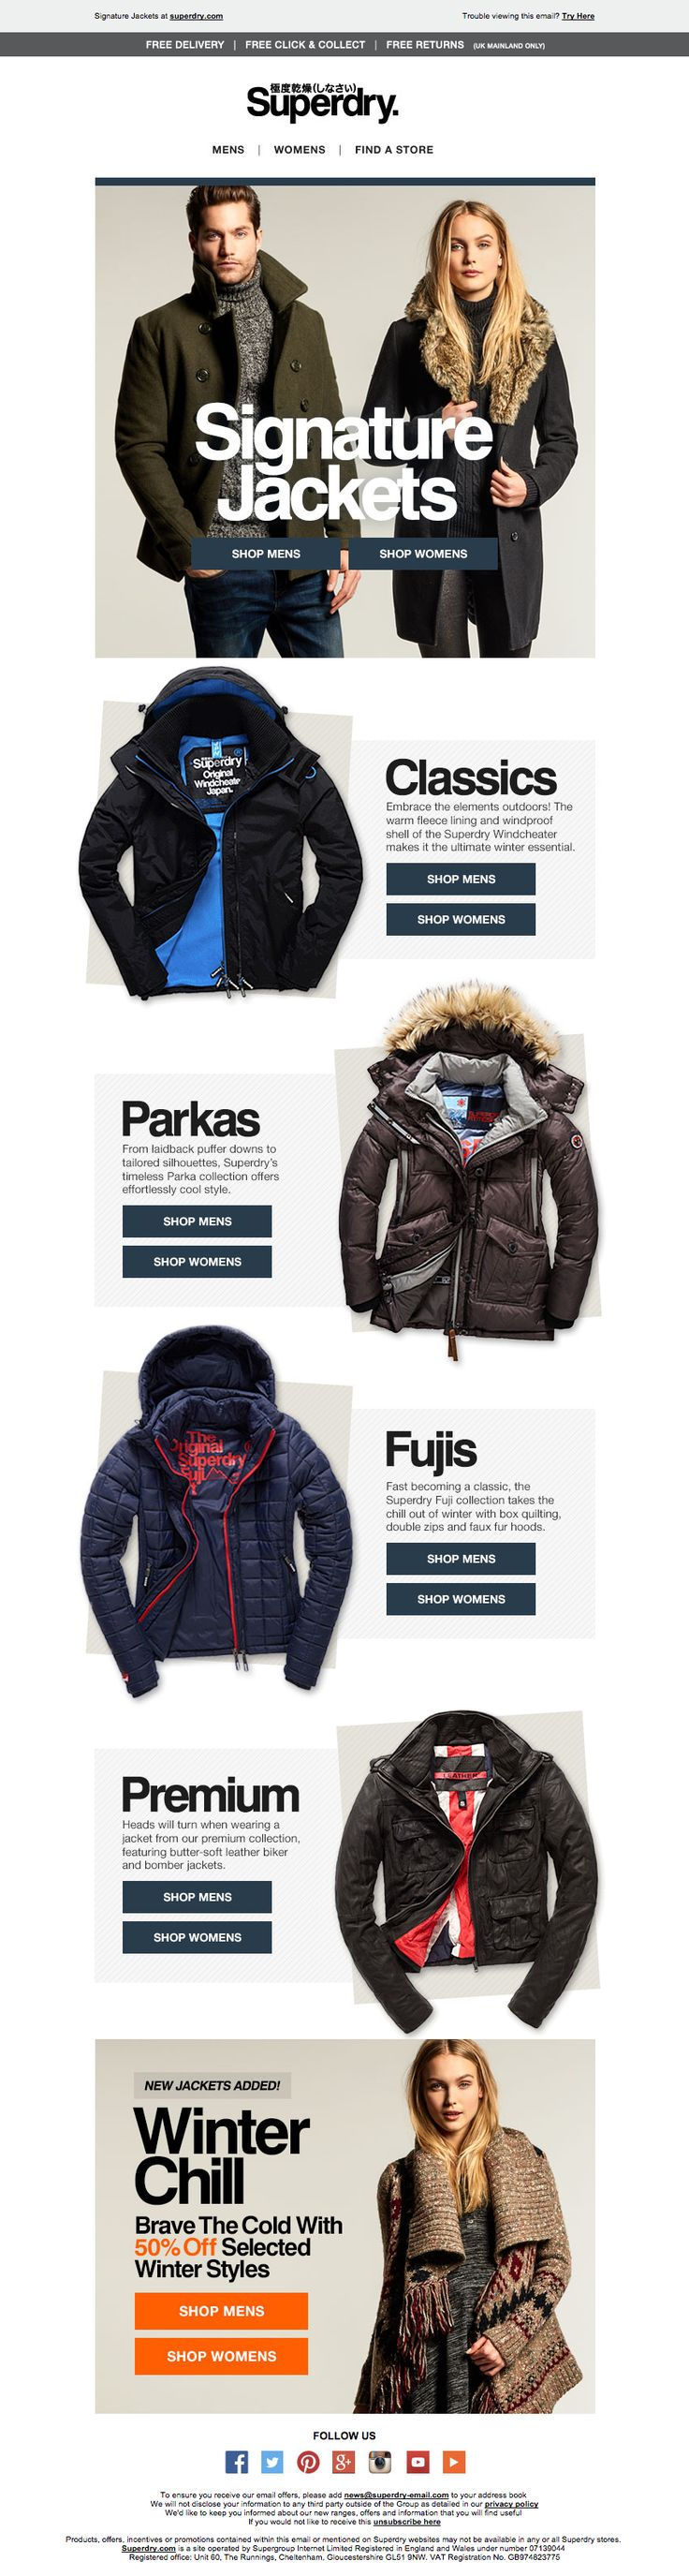 Superdry Jackets Email / Newsletter Design                                                                                                                                                                                 More